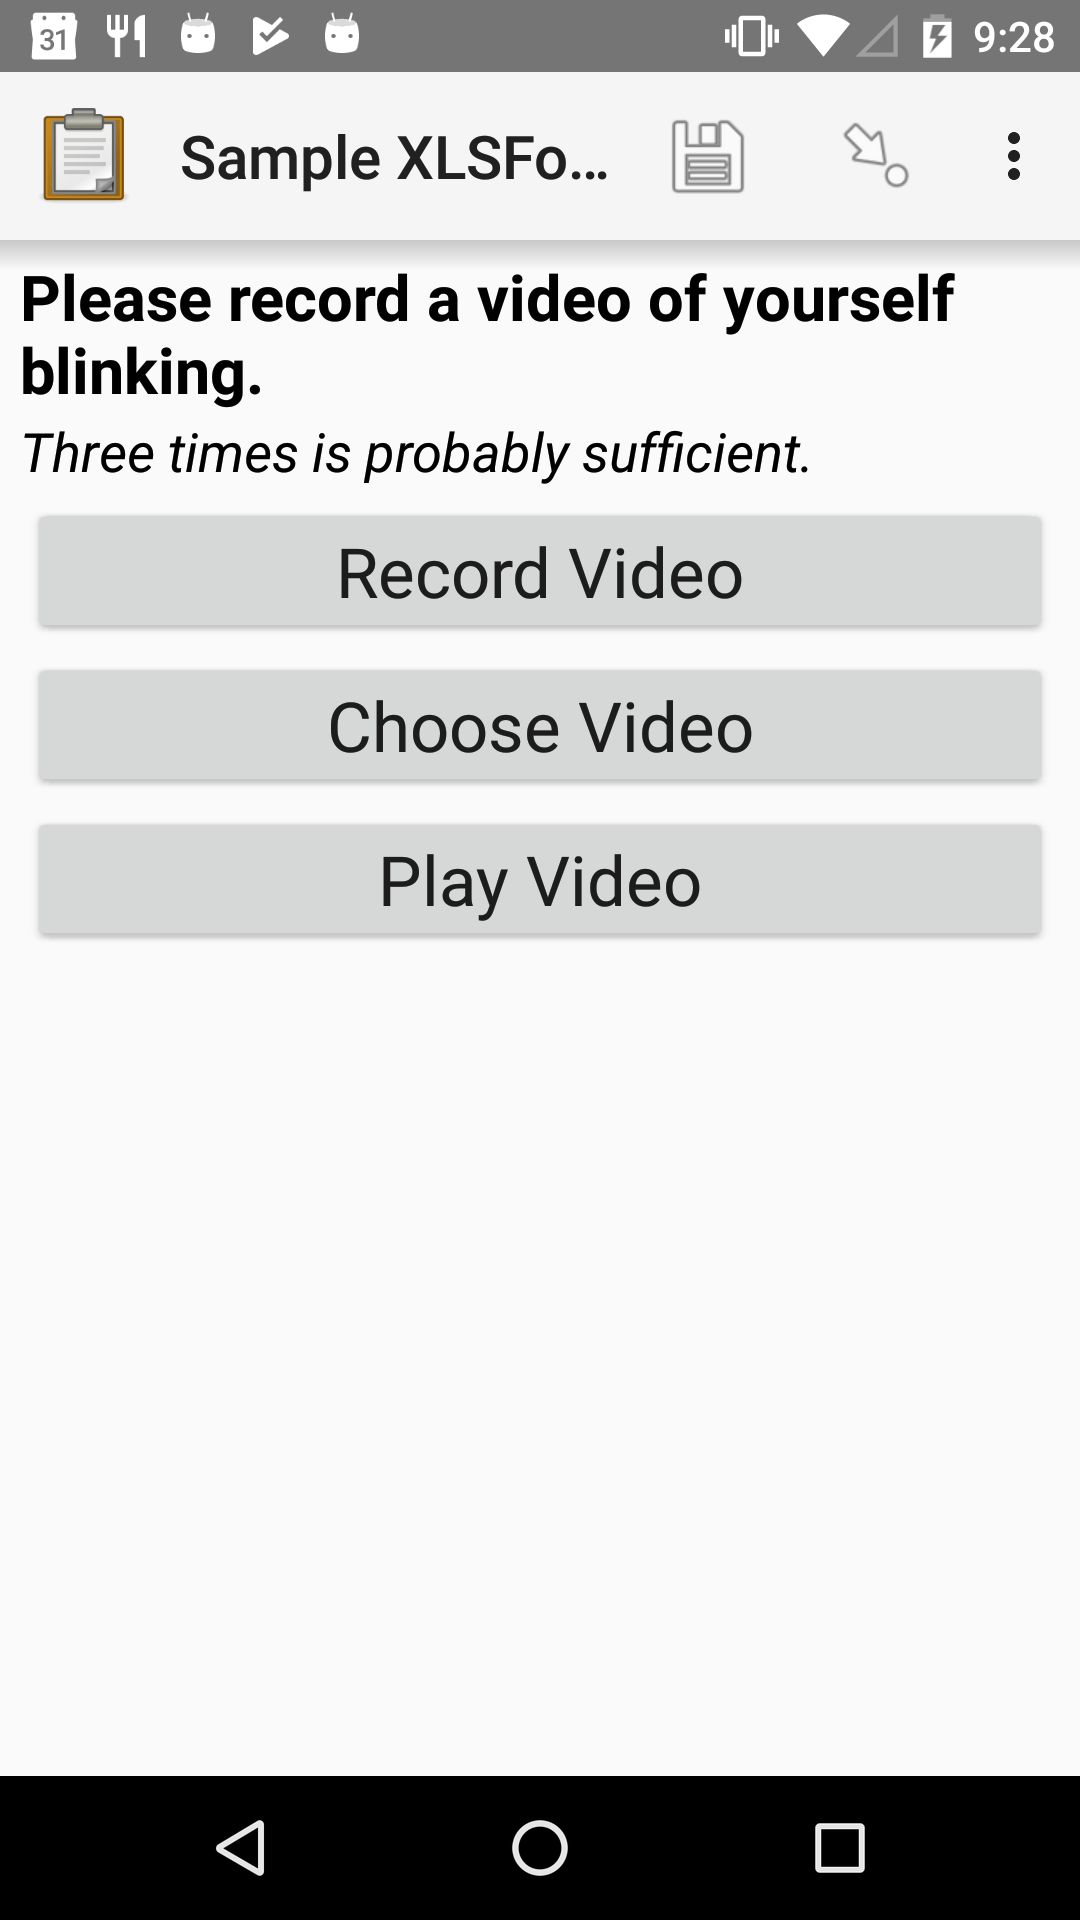 "The Video form widget as displayed previously. The question text is ""Please record a video of yourself blinking."" The hint text is ""Three times is probably sufficient."" Below that are three buttons: Record Video, Choose Video, and Play Video. All three buttons are enabled."